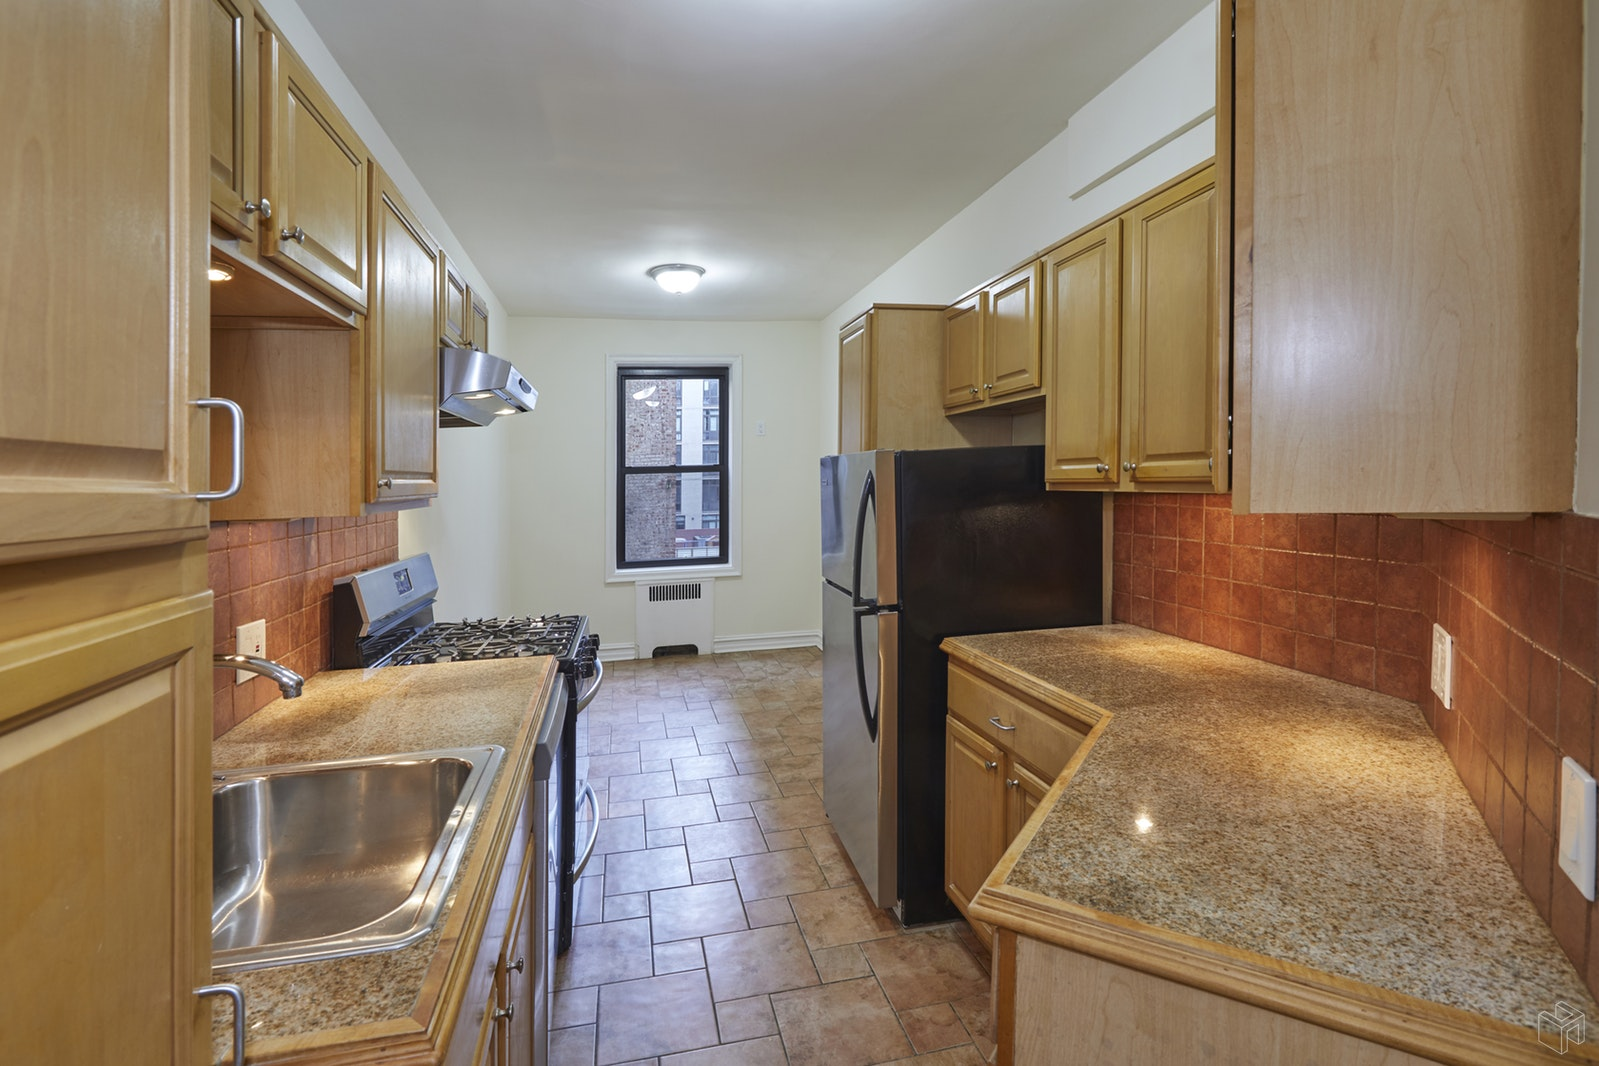 71 Ocean Parkway 2a, Prospect Park, Brooklyn, NY, 11218, $529,000, Sold Property, Halstead Real Estate, Photo 5